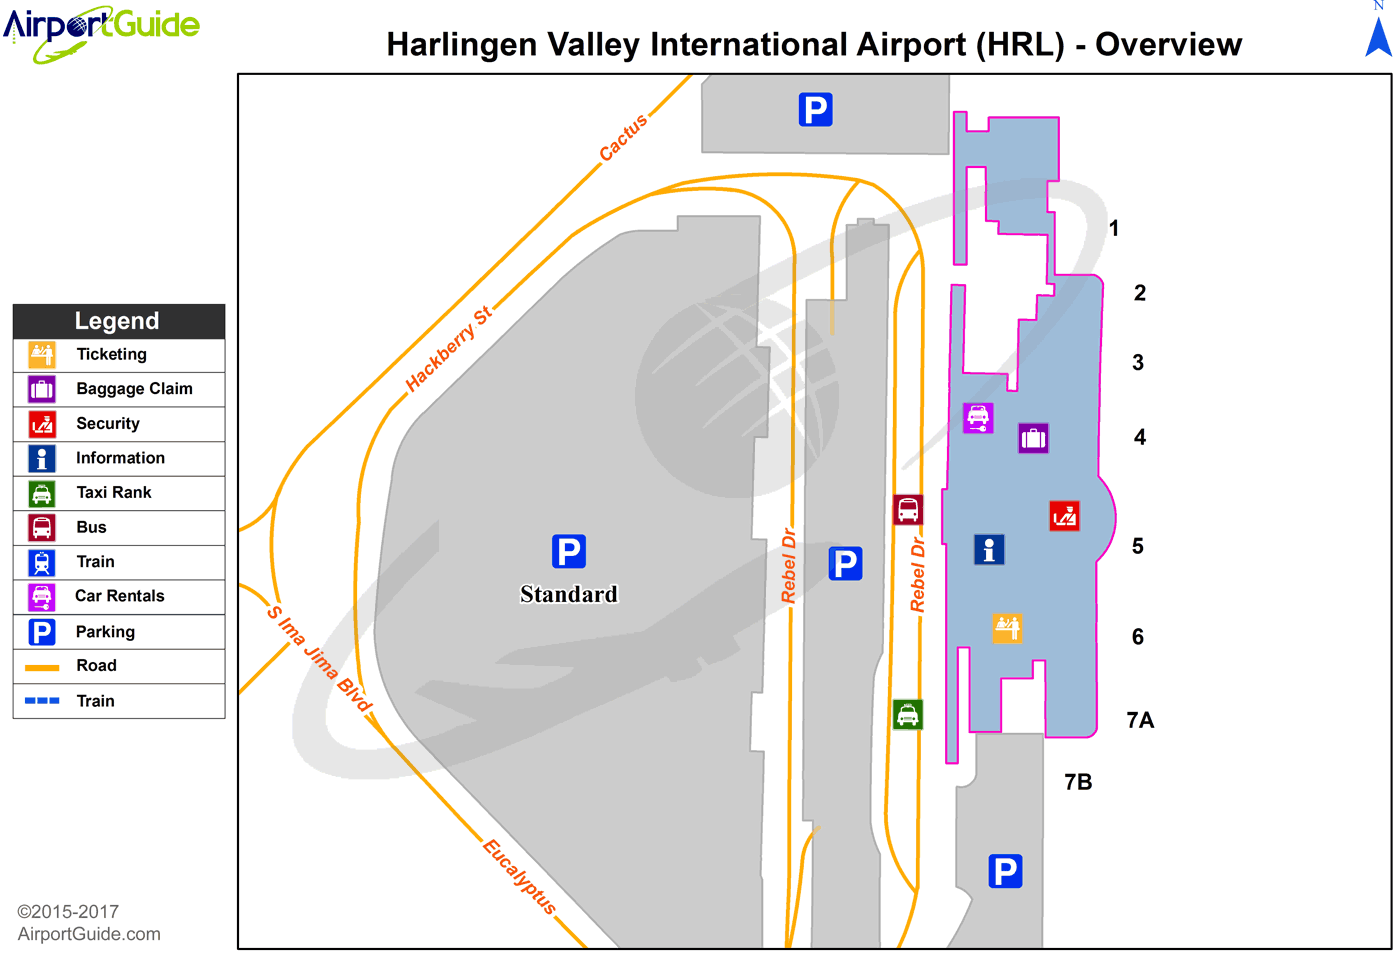 Harlingen - Valley International (HRL) Airport Terminal Map - Overview